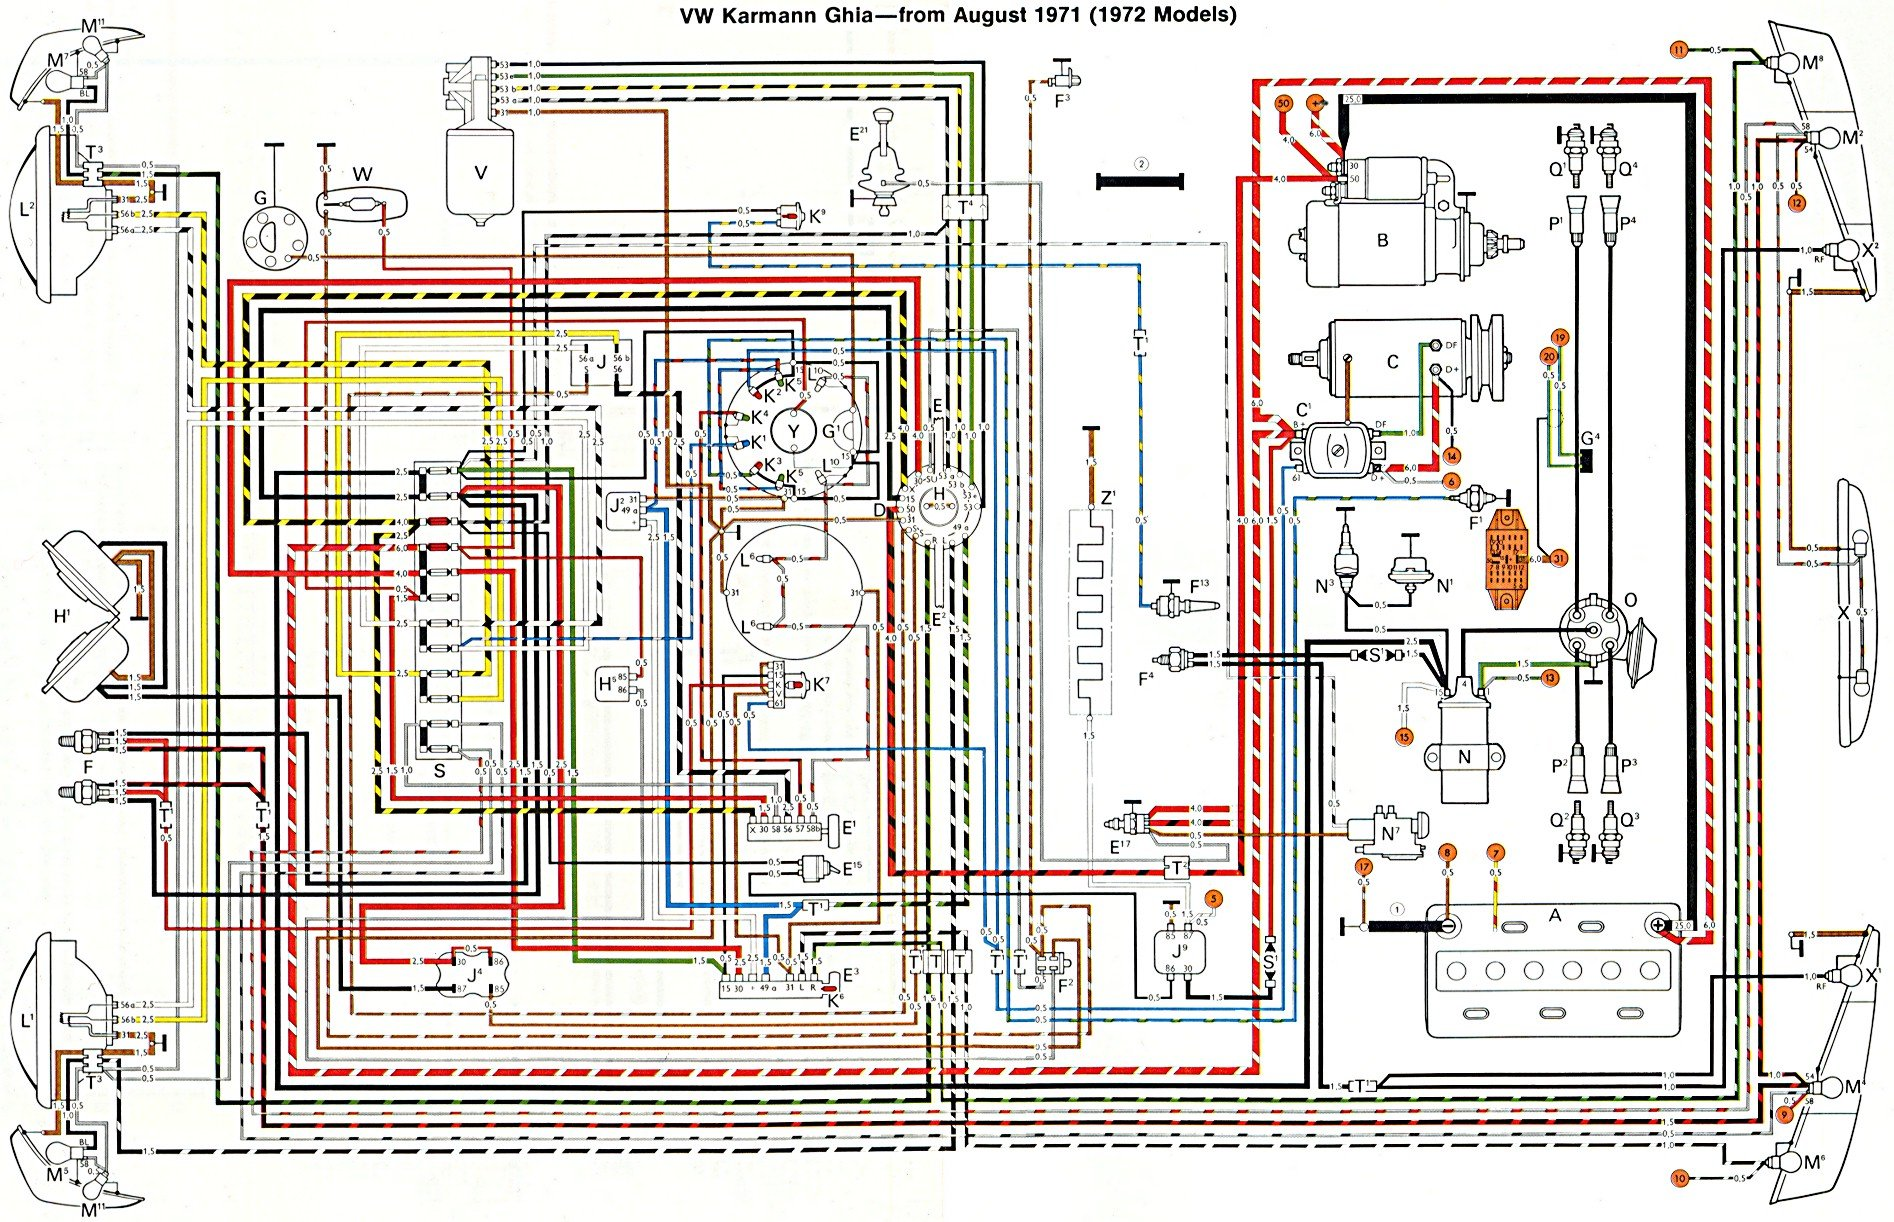 72ghia vw type 3 wiring diagram vw wiring diagrams free downloads \u2022 free vw type 3 wiring harness at aneh.co